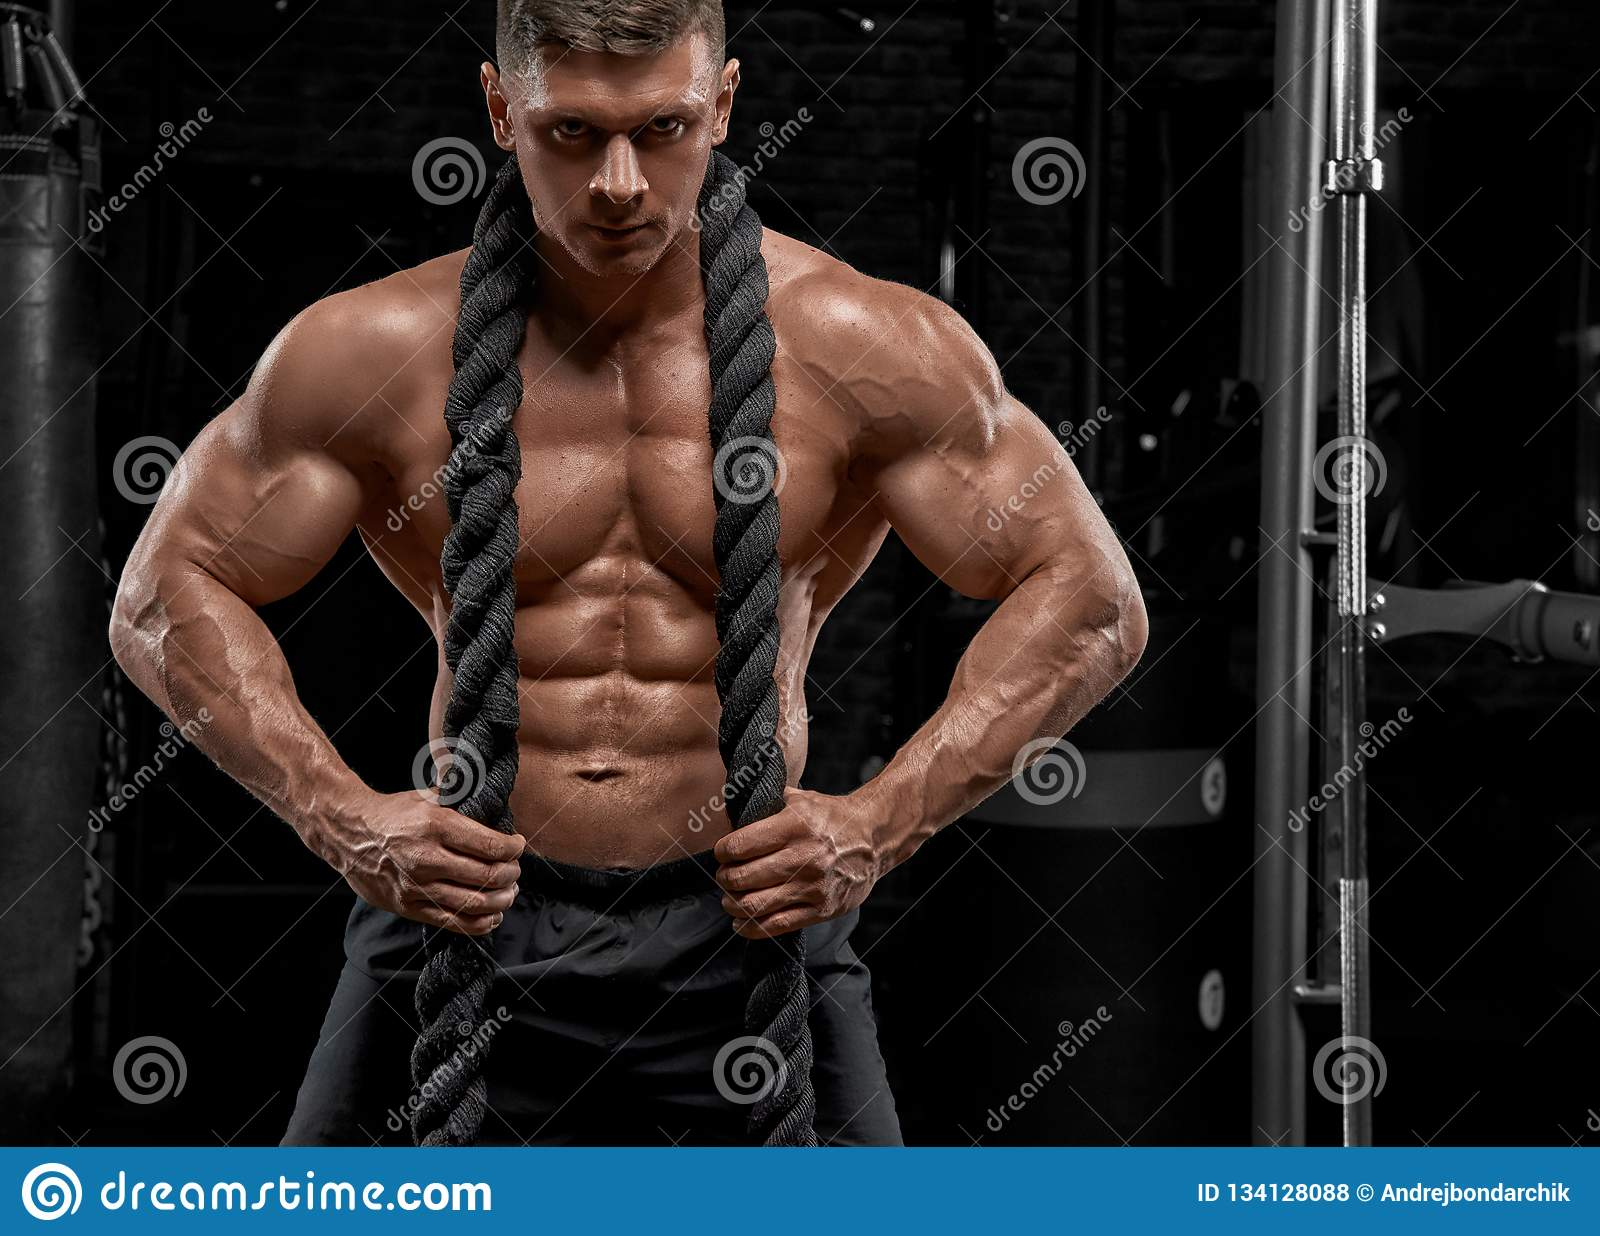 Muscular man working out in gym doing exercises